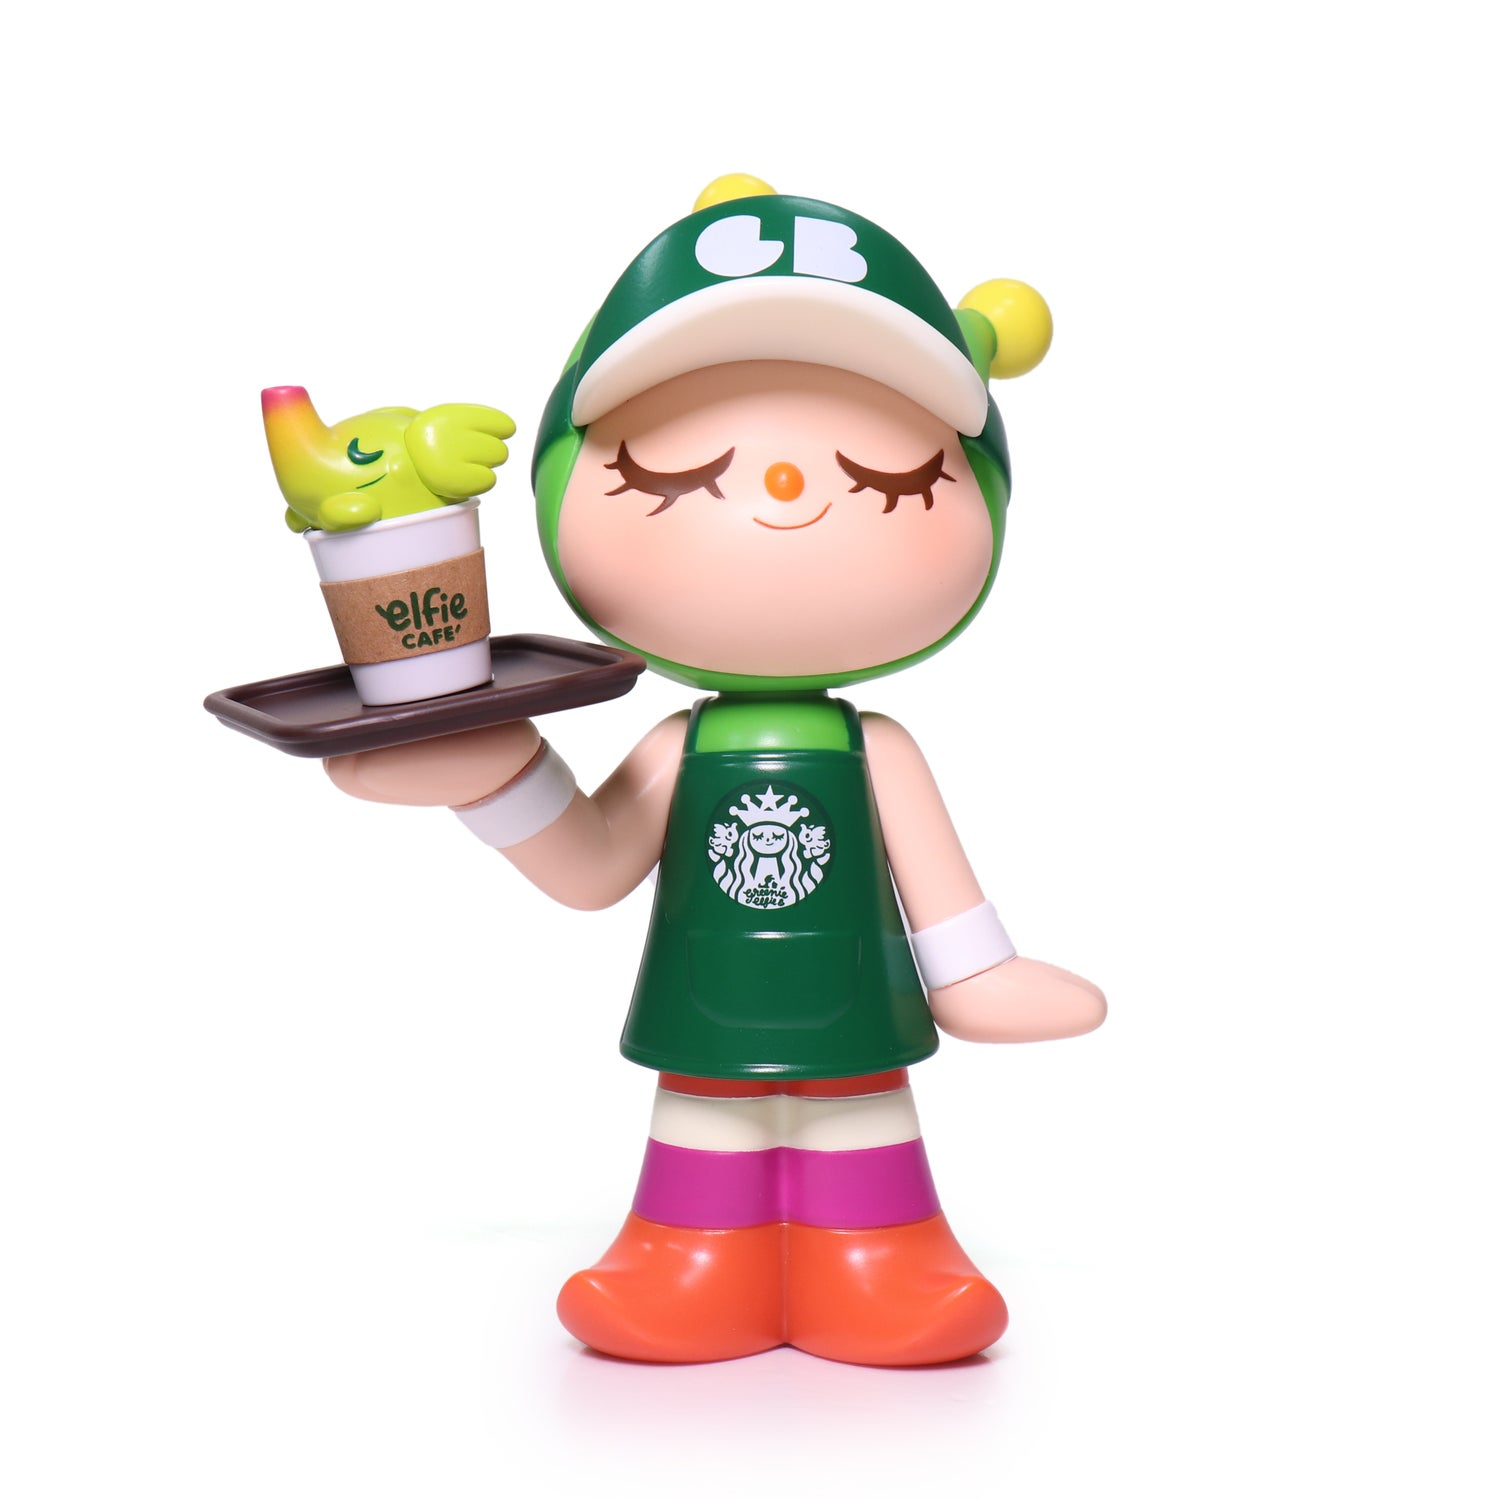 Image of ELFIE'S CAFE WAITRESS GREENIE (GREEN OUTFIT EDITION)